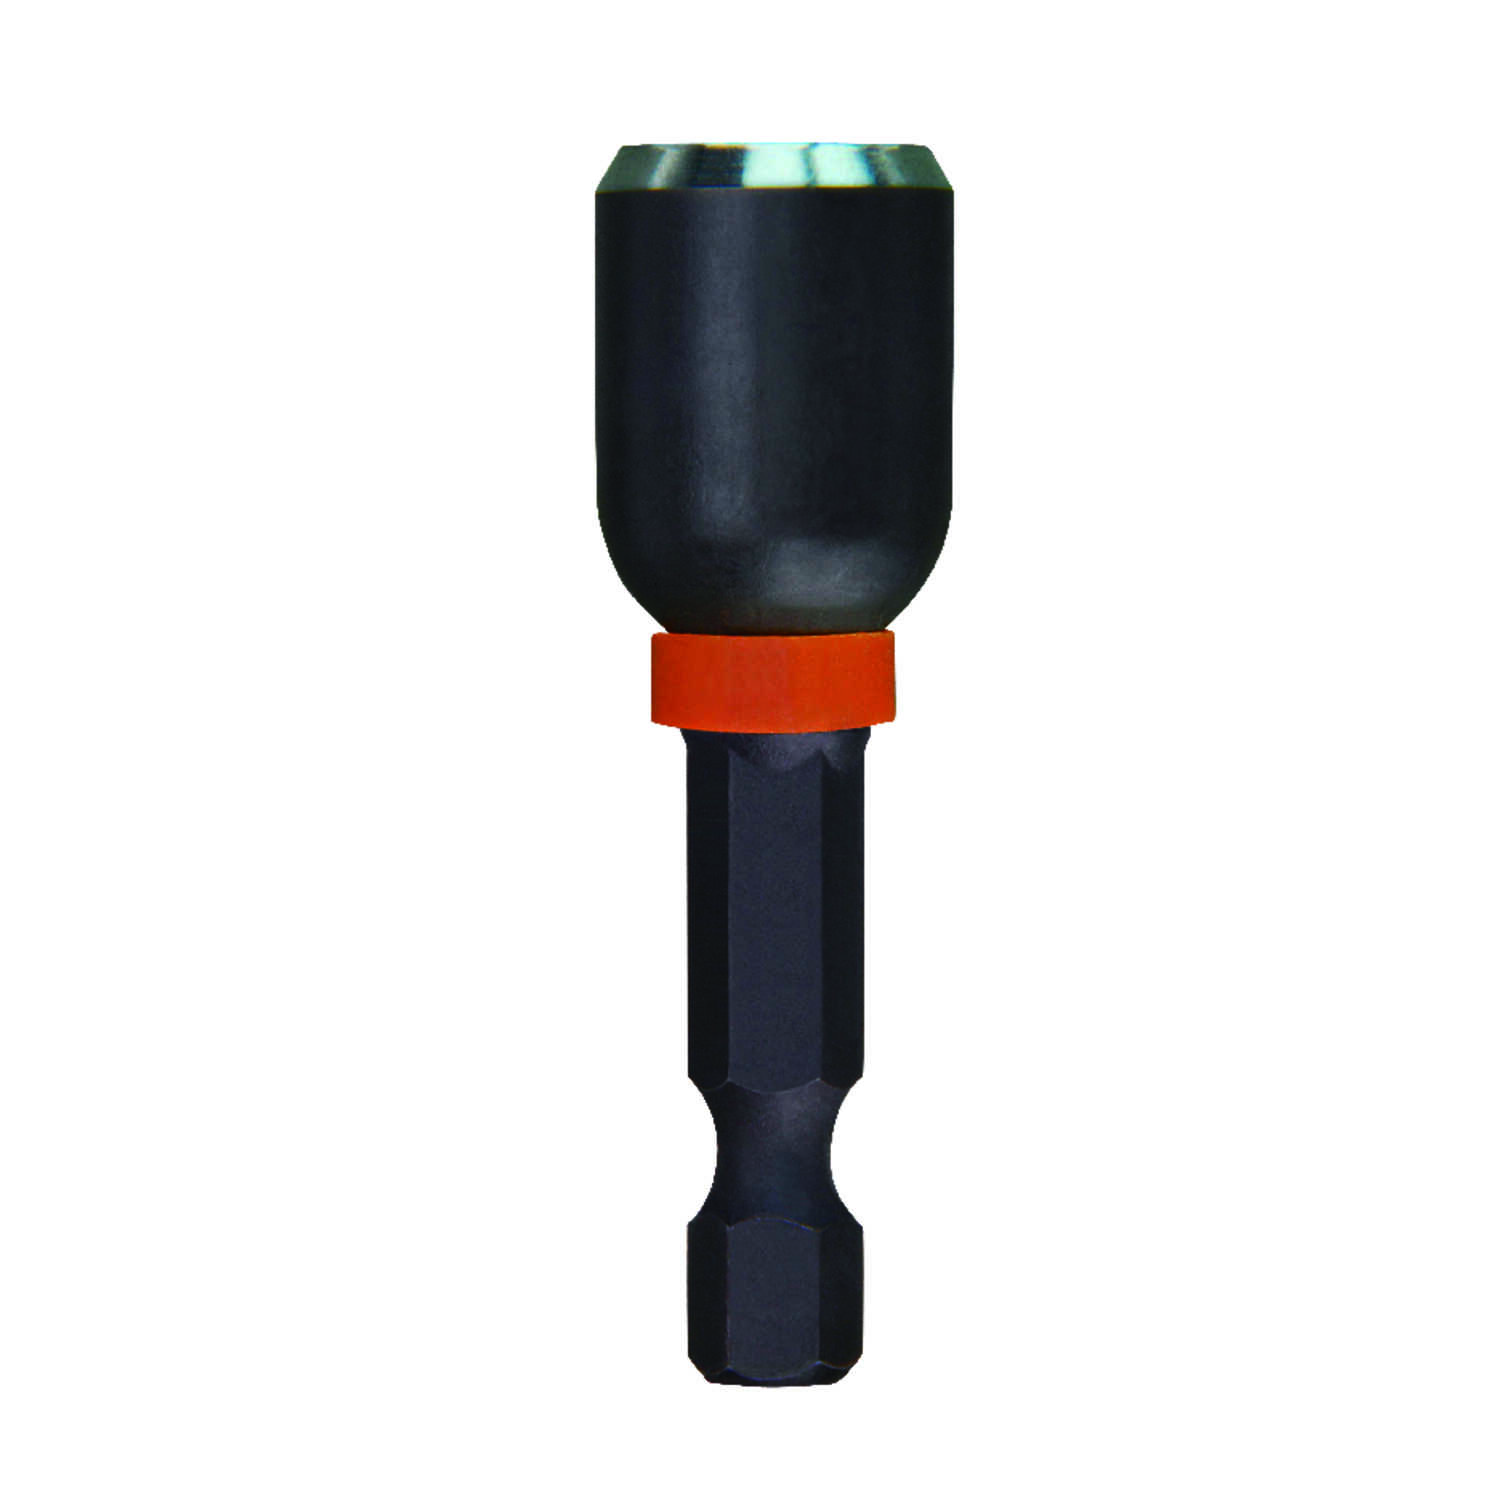 Milwaukee  SHOCKWAVE IMPACT DUTY  7/16 inch drive in.  x 1.875 in. L Heat-Treated Steel  Nut Driver